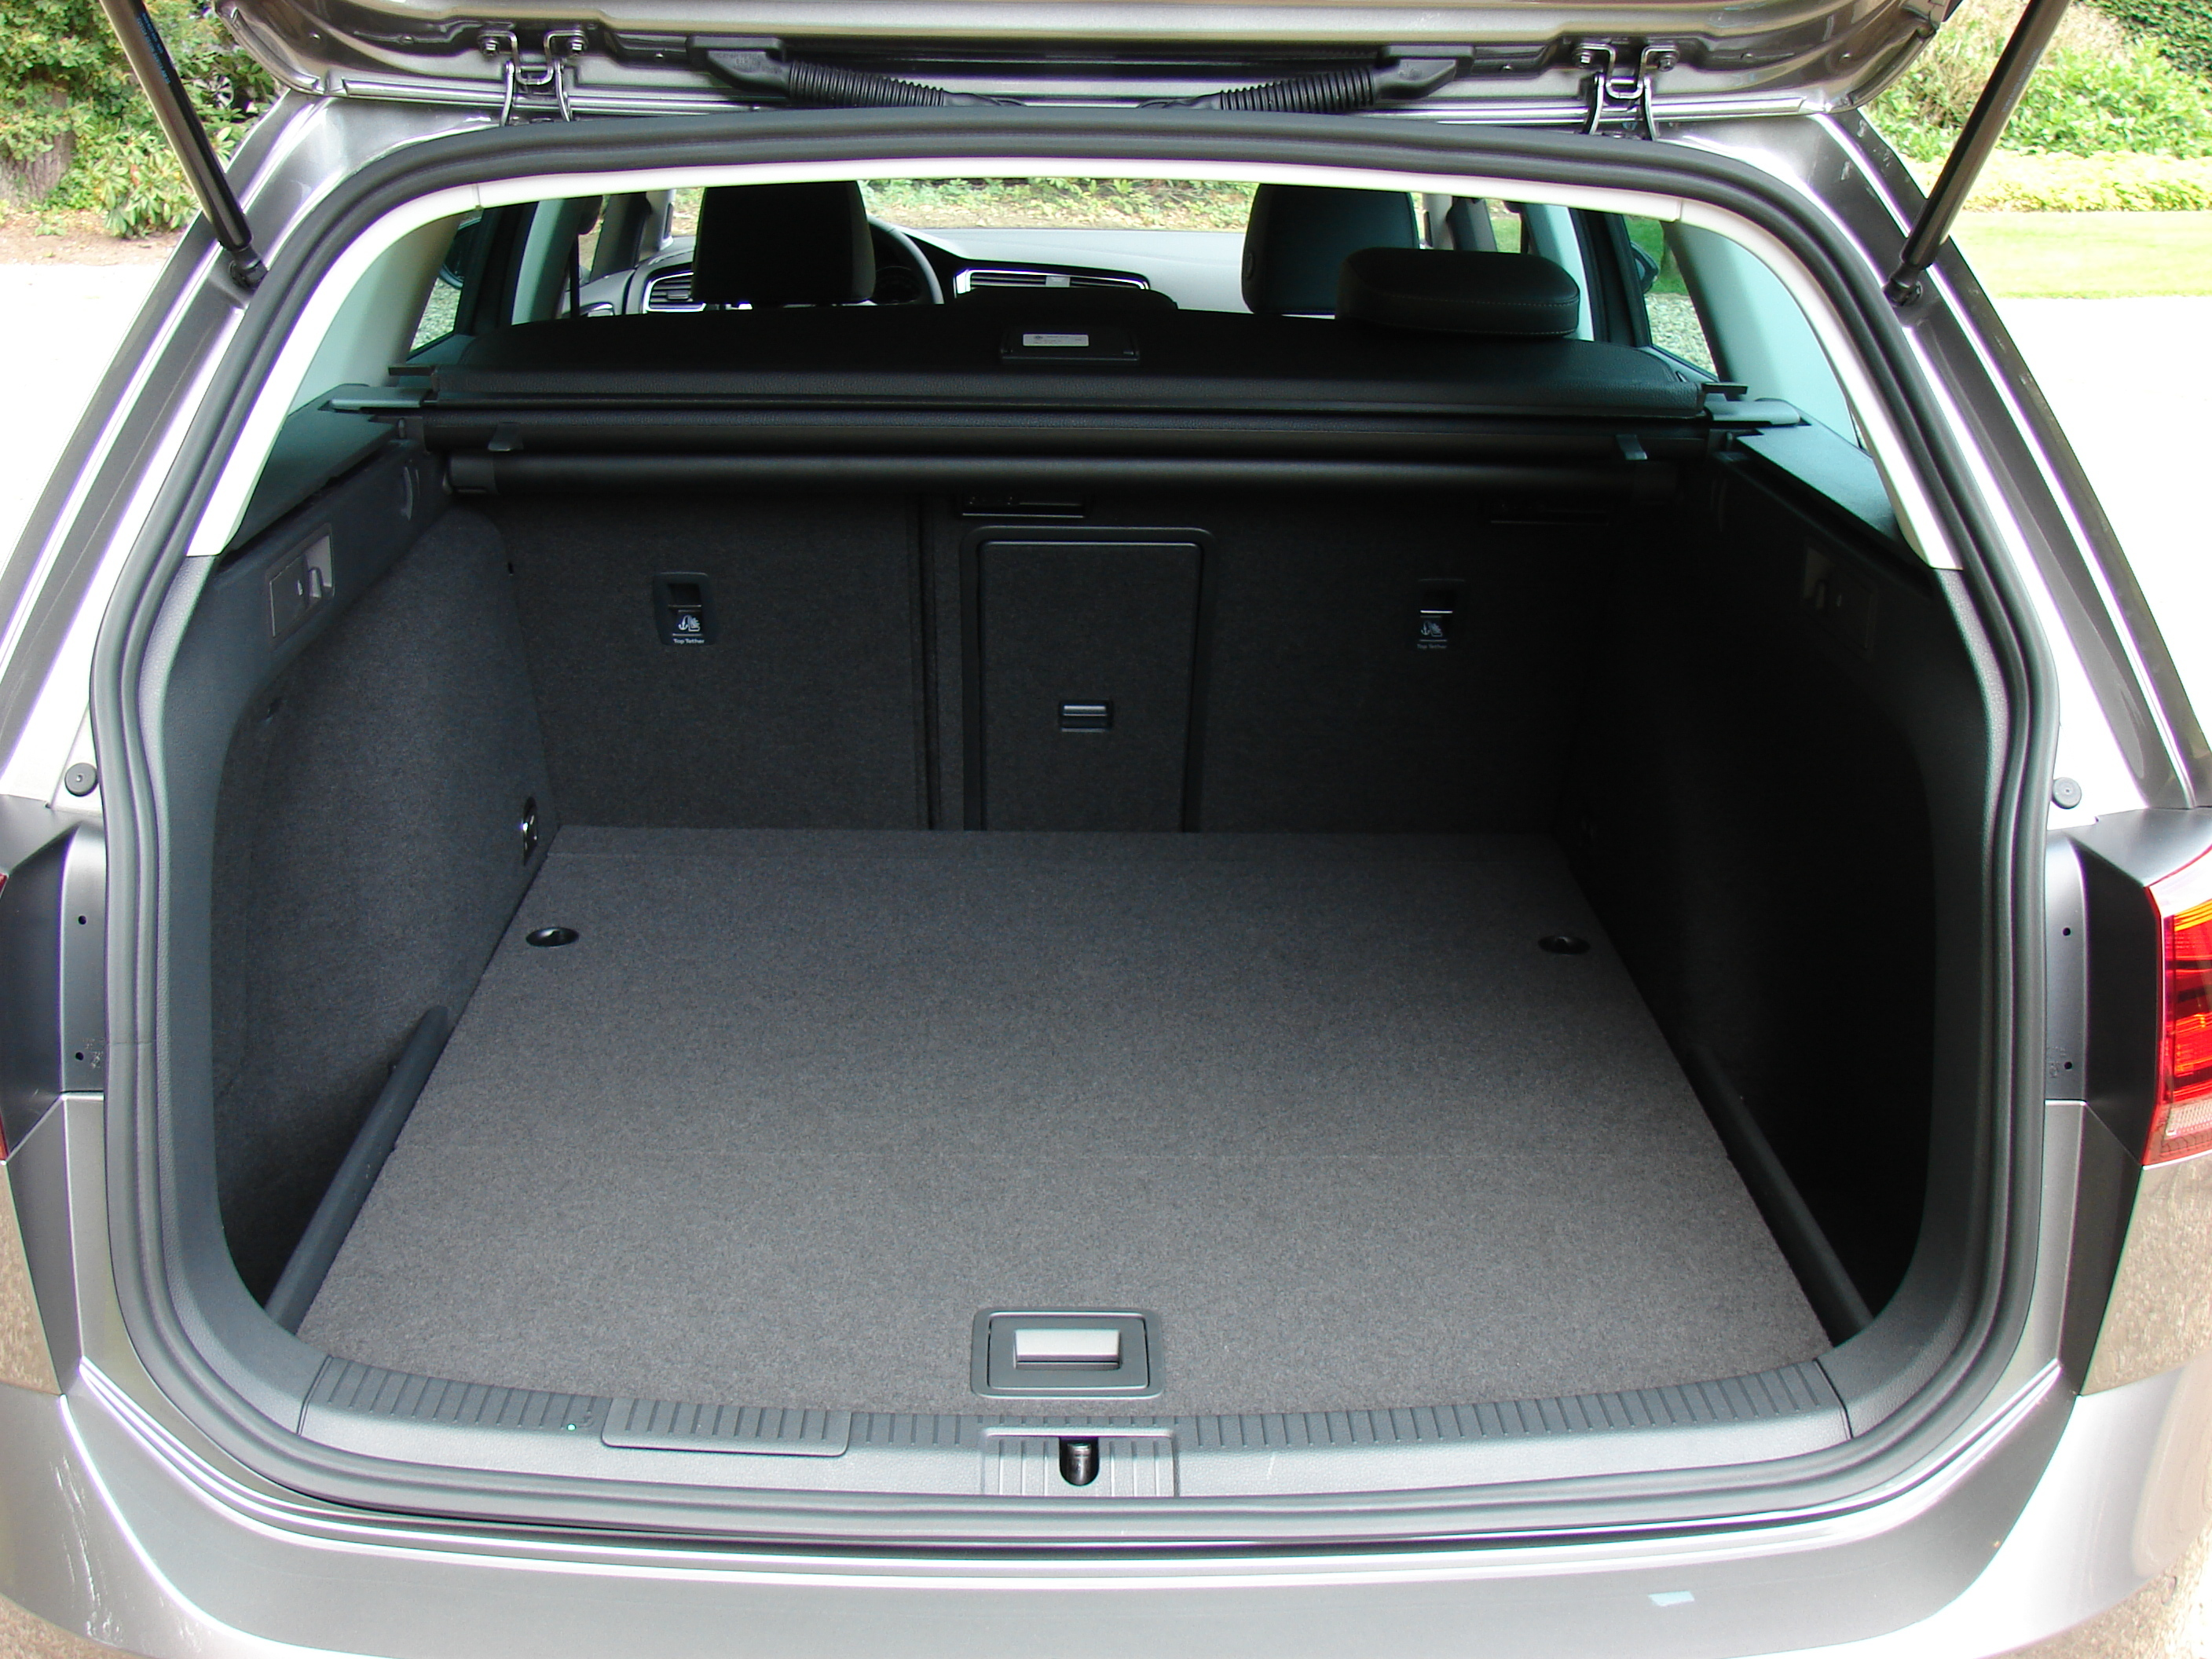 volkswagen golf 7 sw en avant premi re les photos de l 39 essai. Black Bedroom Furniture Sets. Home Design Ideas